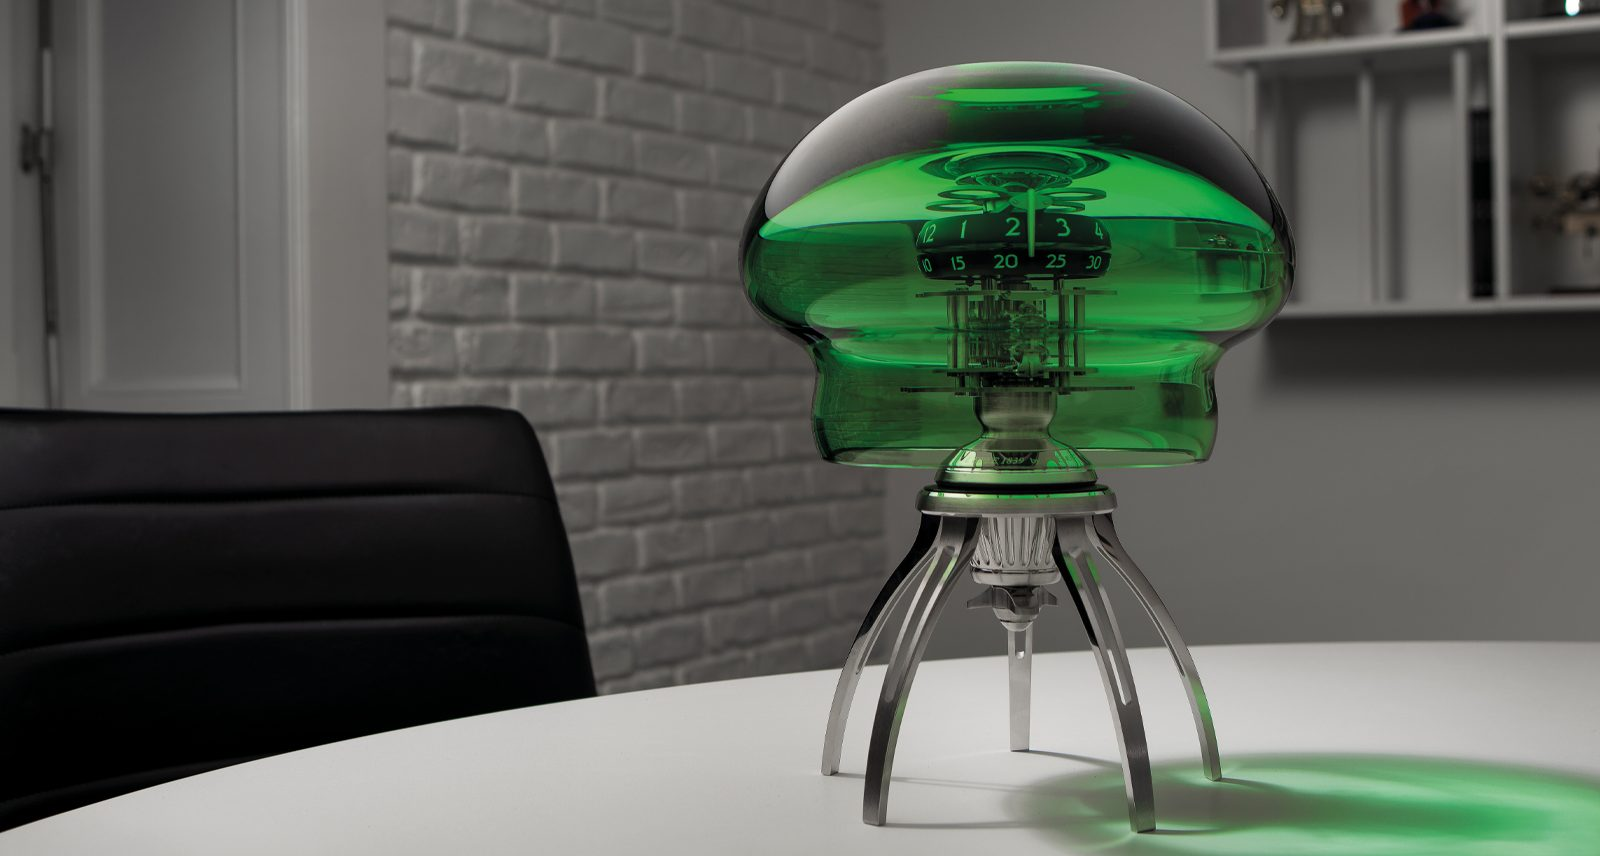 MB&F's Medusa Puts a Time-Telling Jellyfish on Your Desk